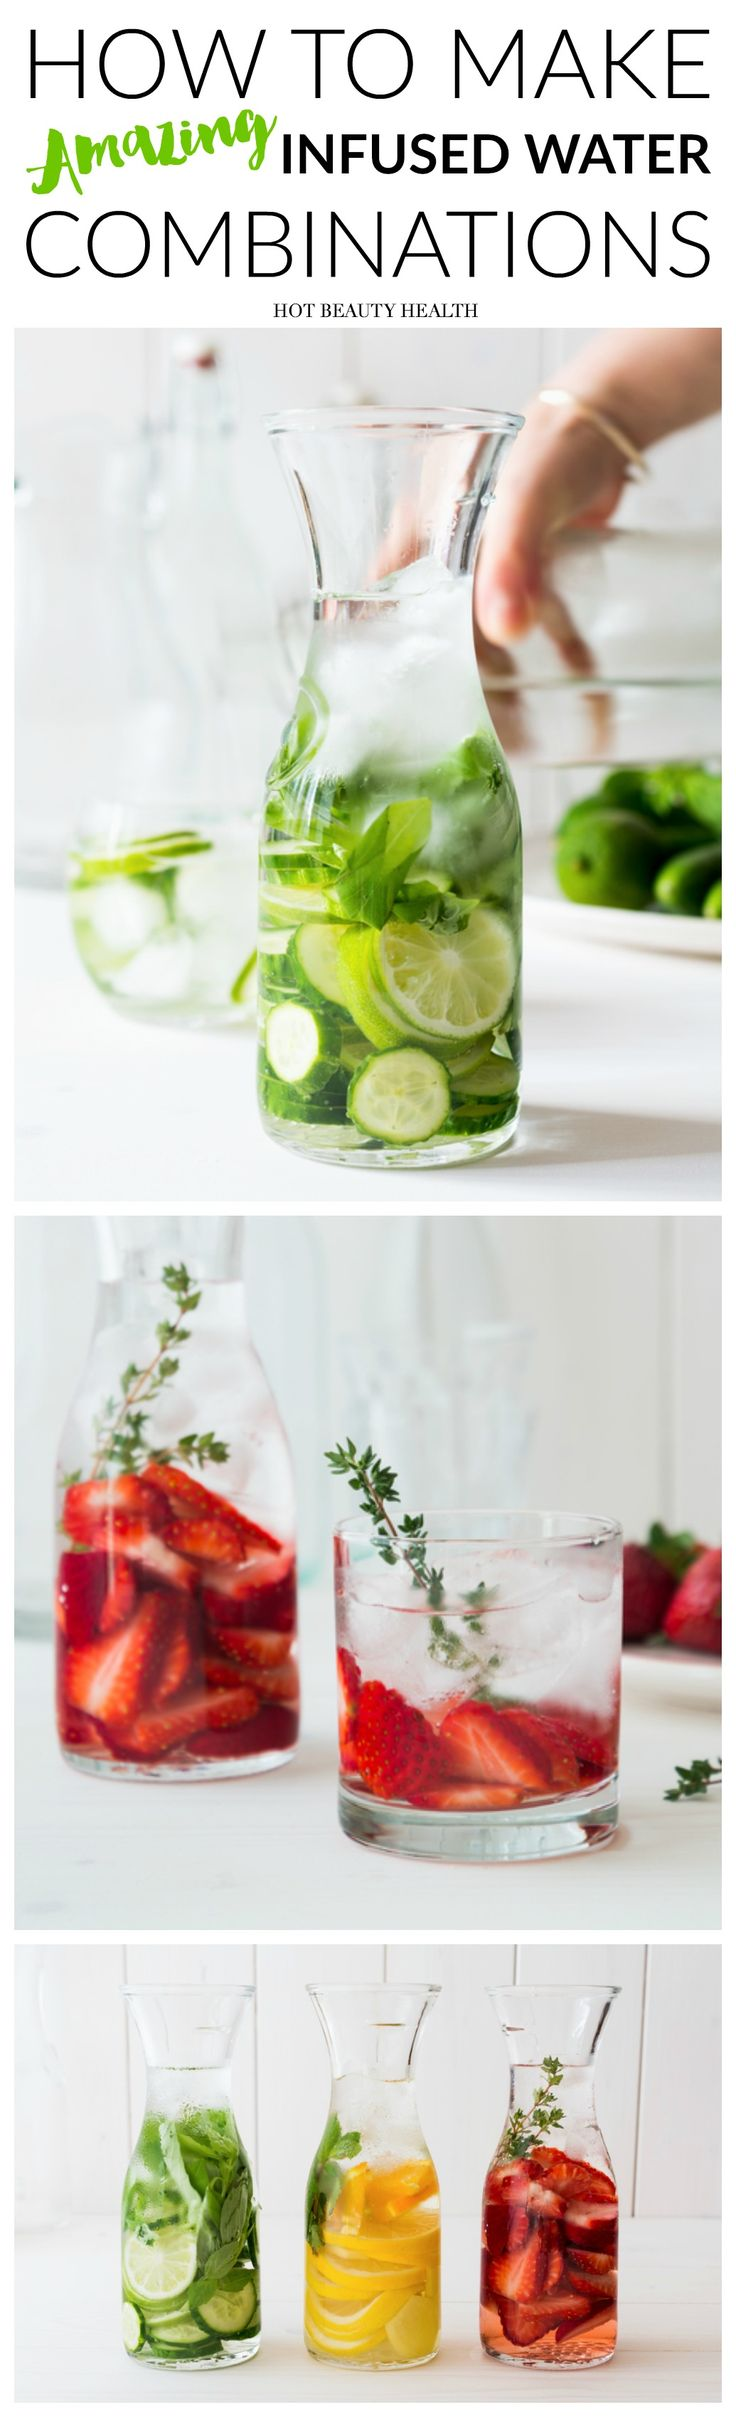 17 Best ideas about Cucumber Infused Water on Pinterest ...